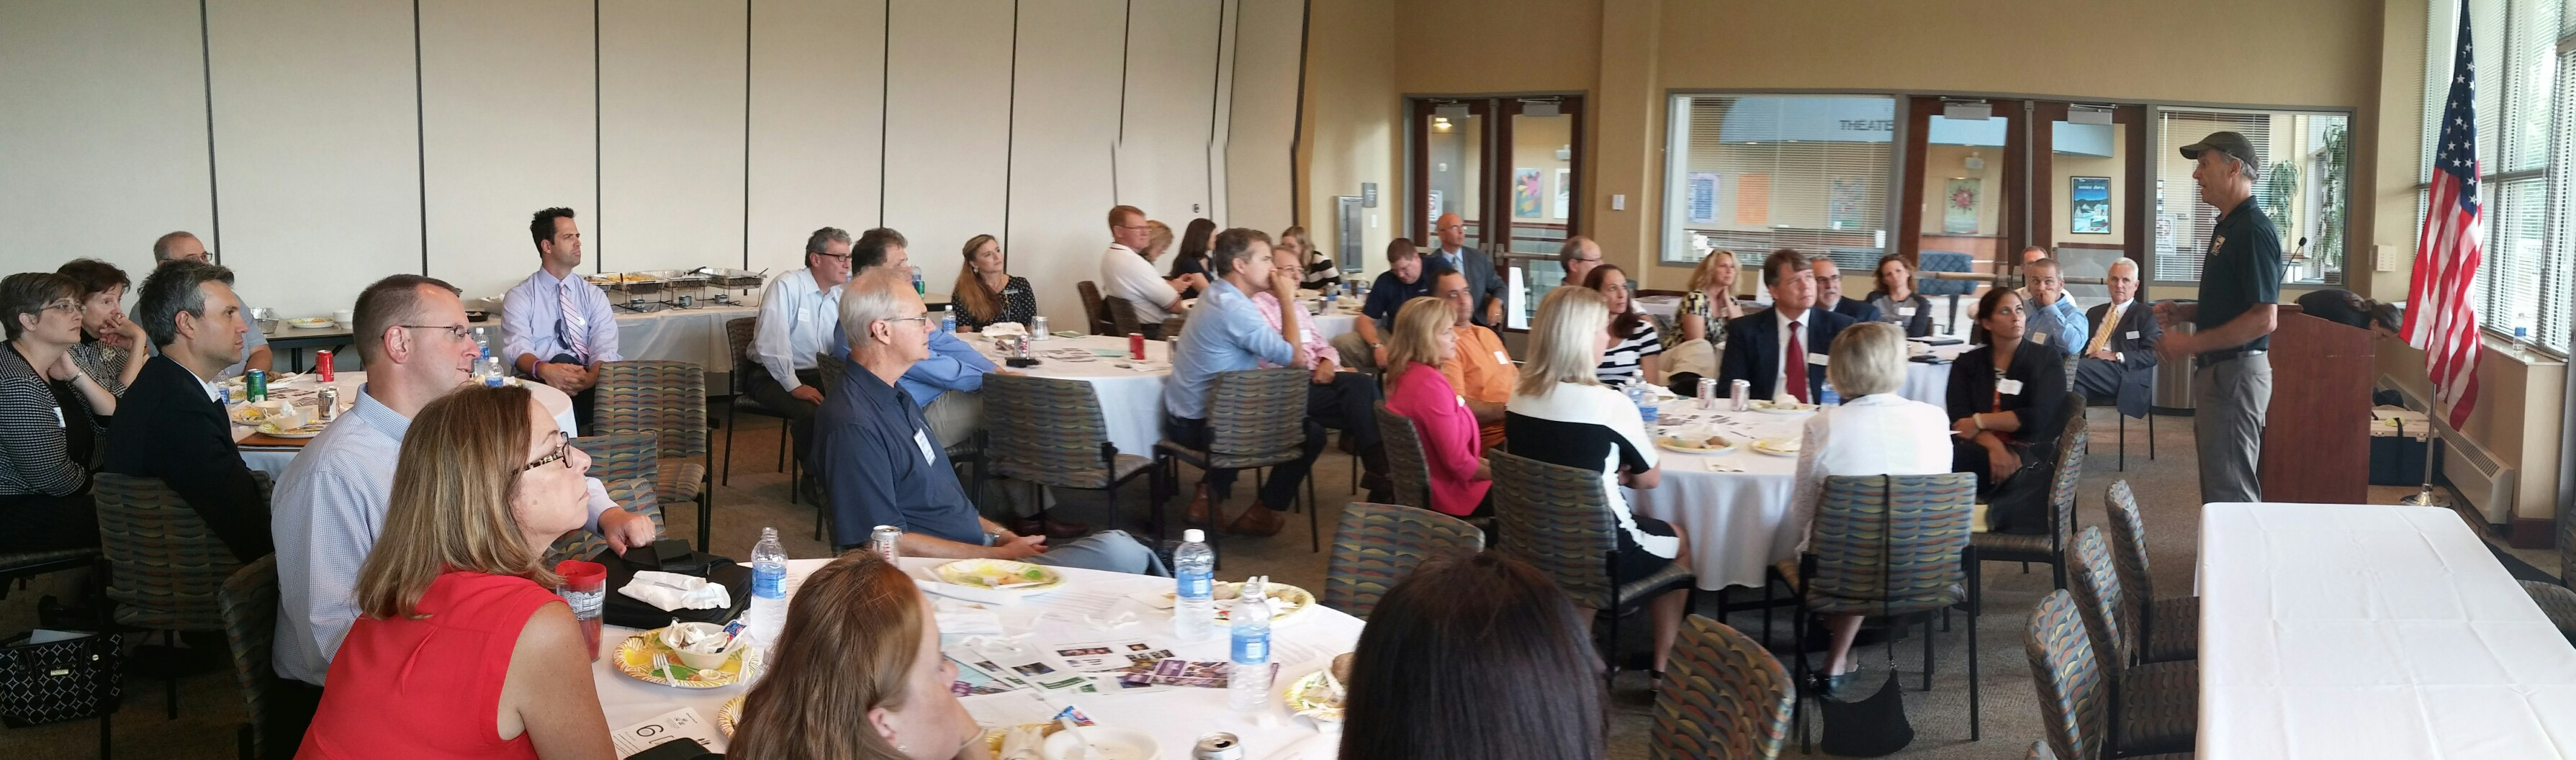 Anderson Area Chamber of Commerce Monthly Meeting